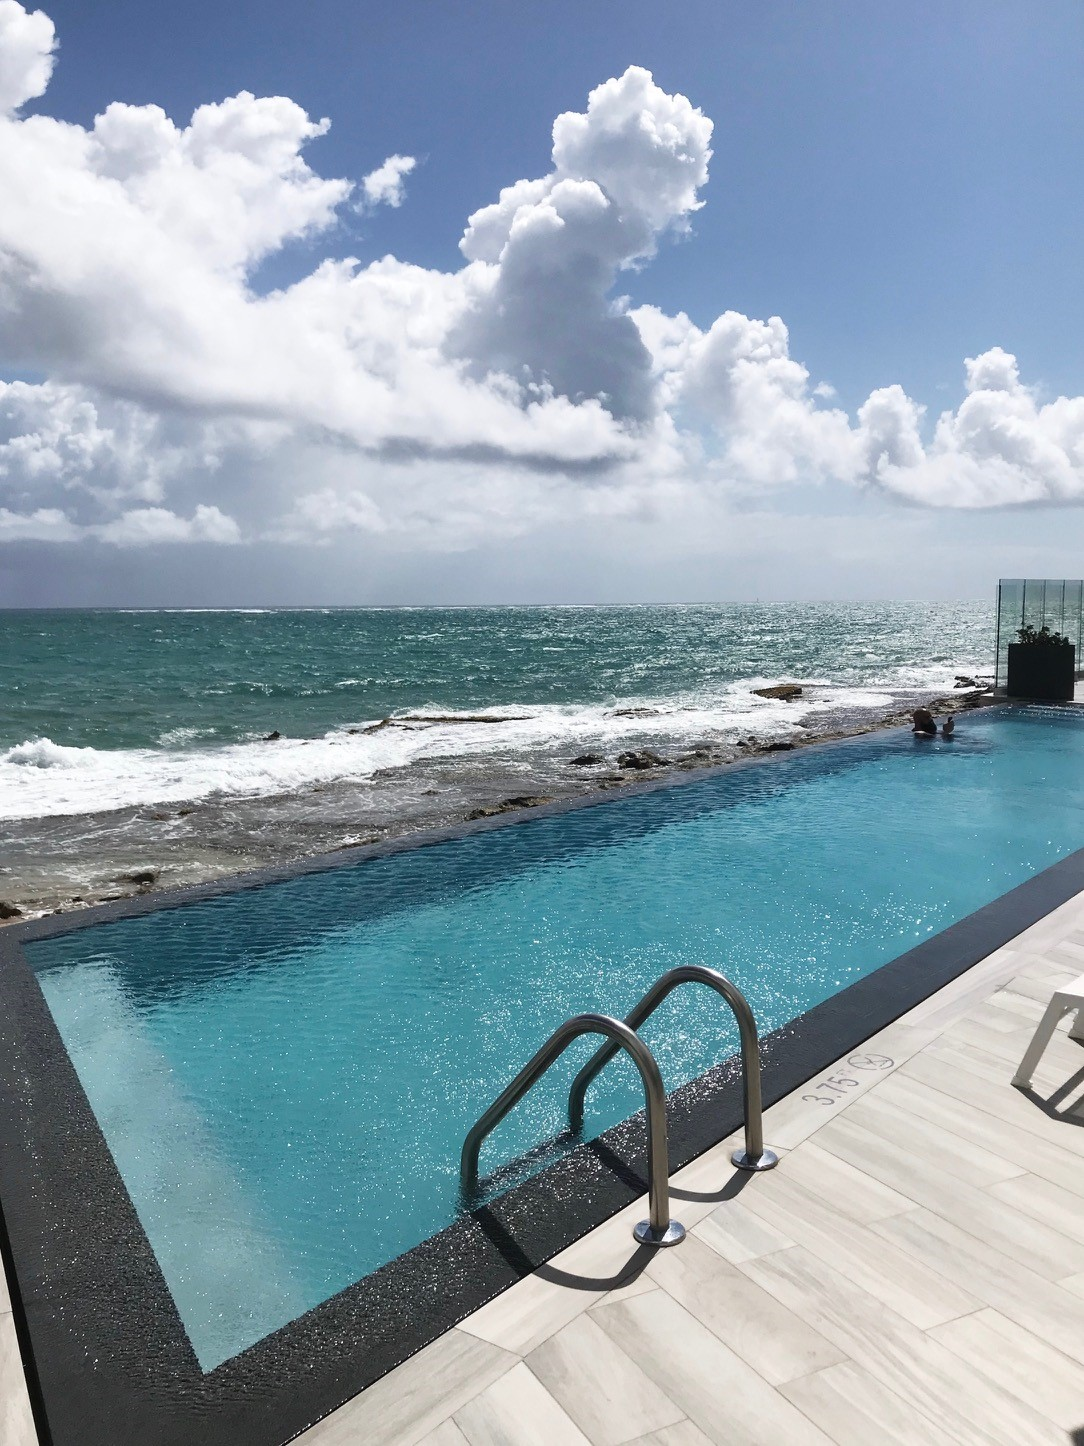 A Travel Guide to San Juan, Puerto Rico with The Barefoot Angel - Where to Stay, Where to Eat, What to See and Do!